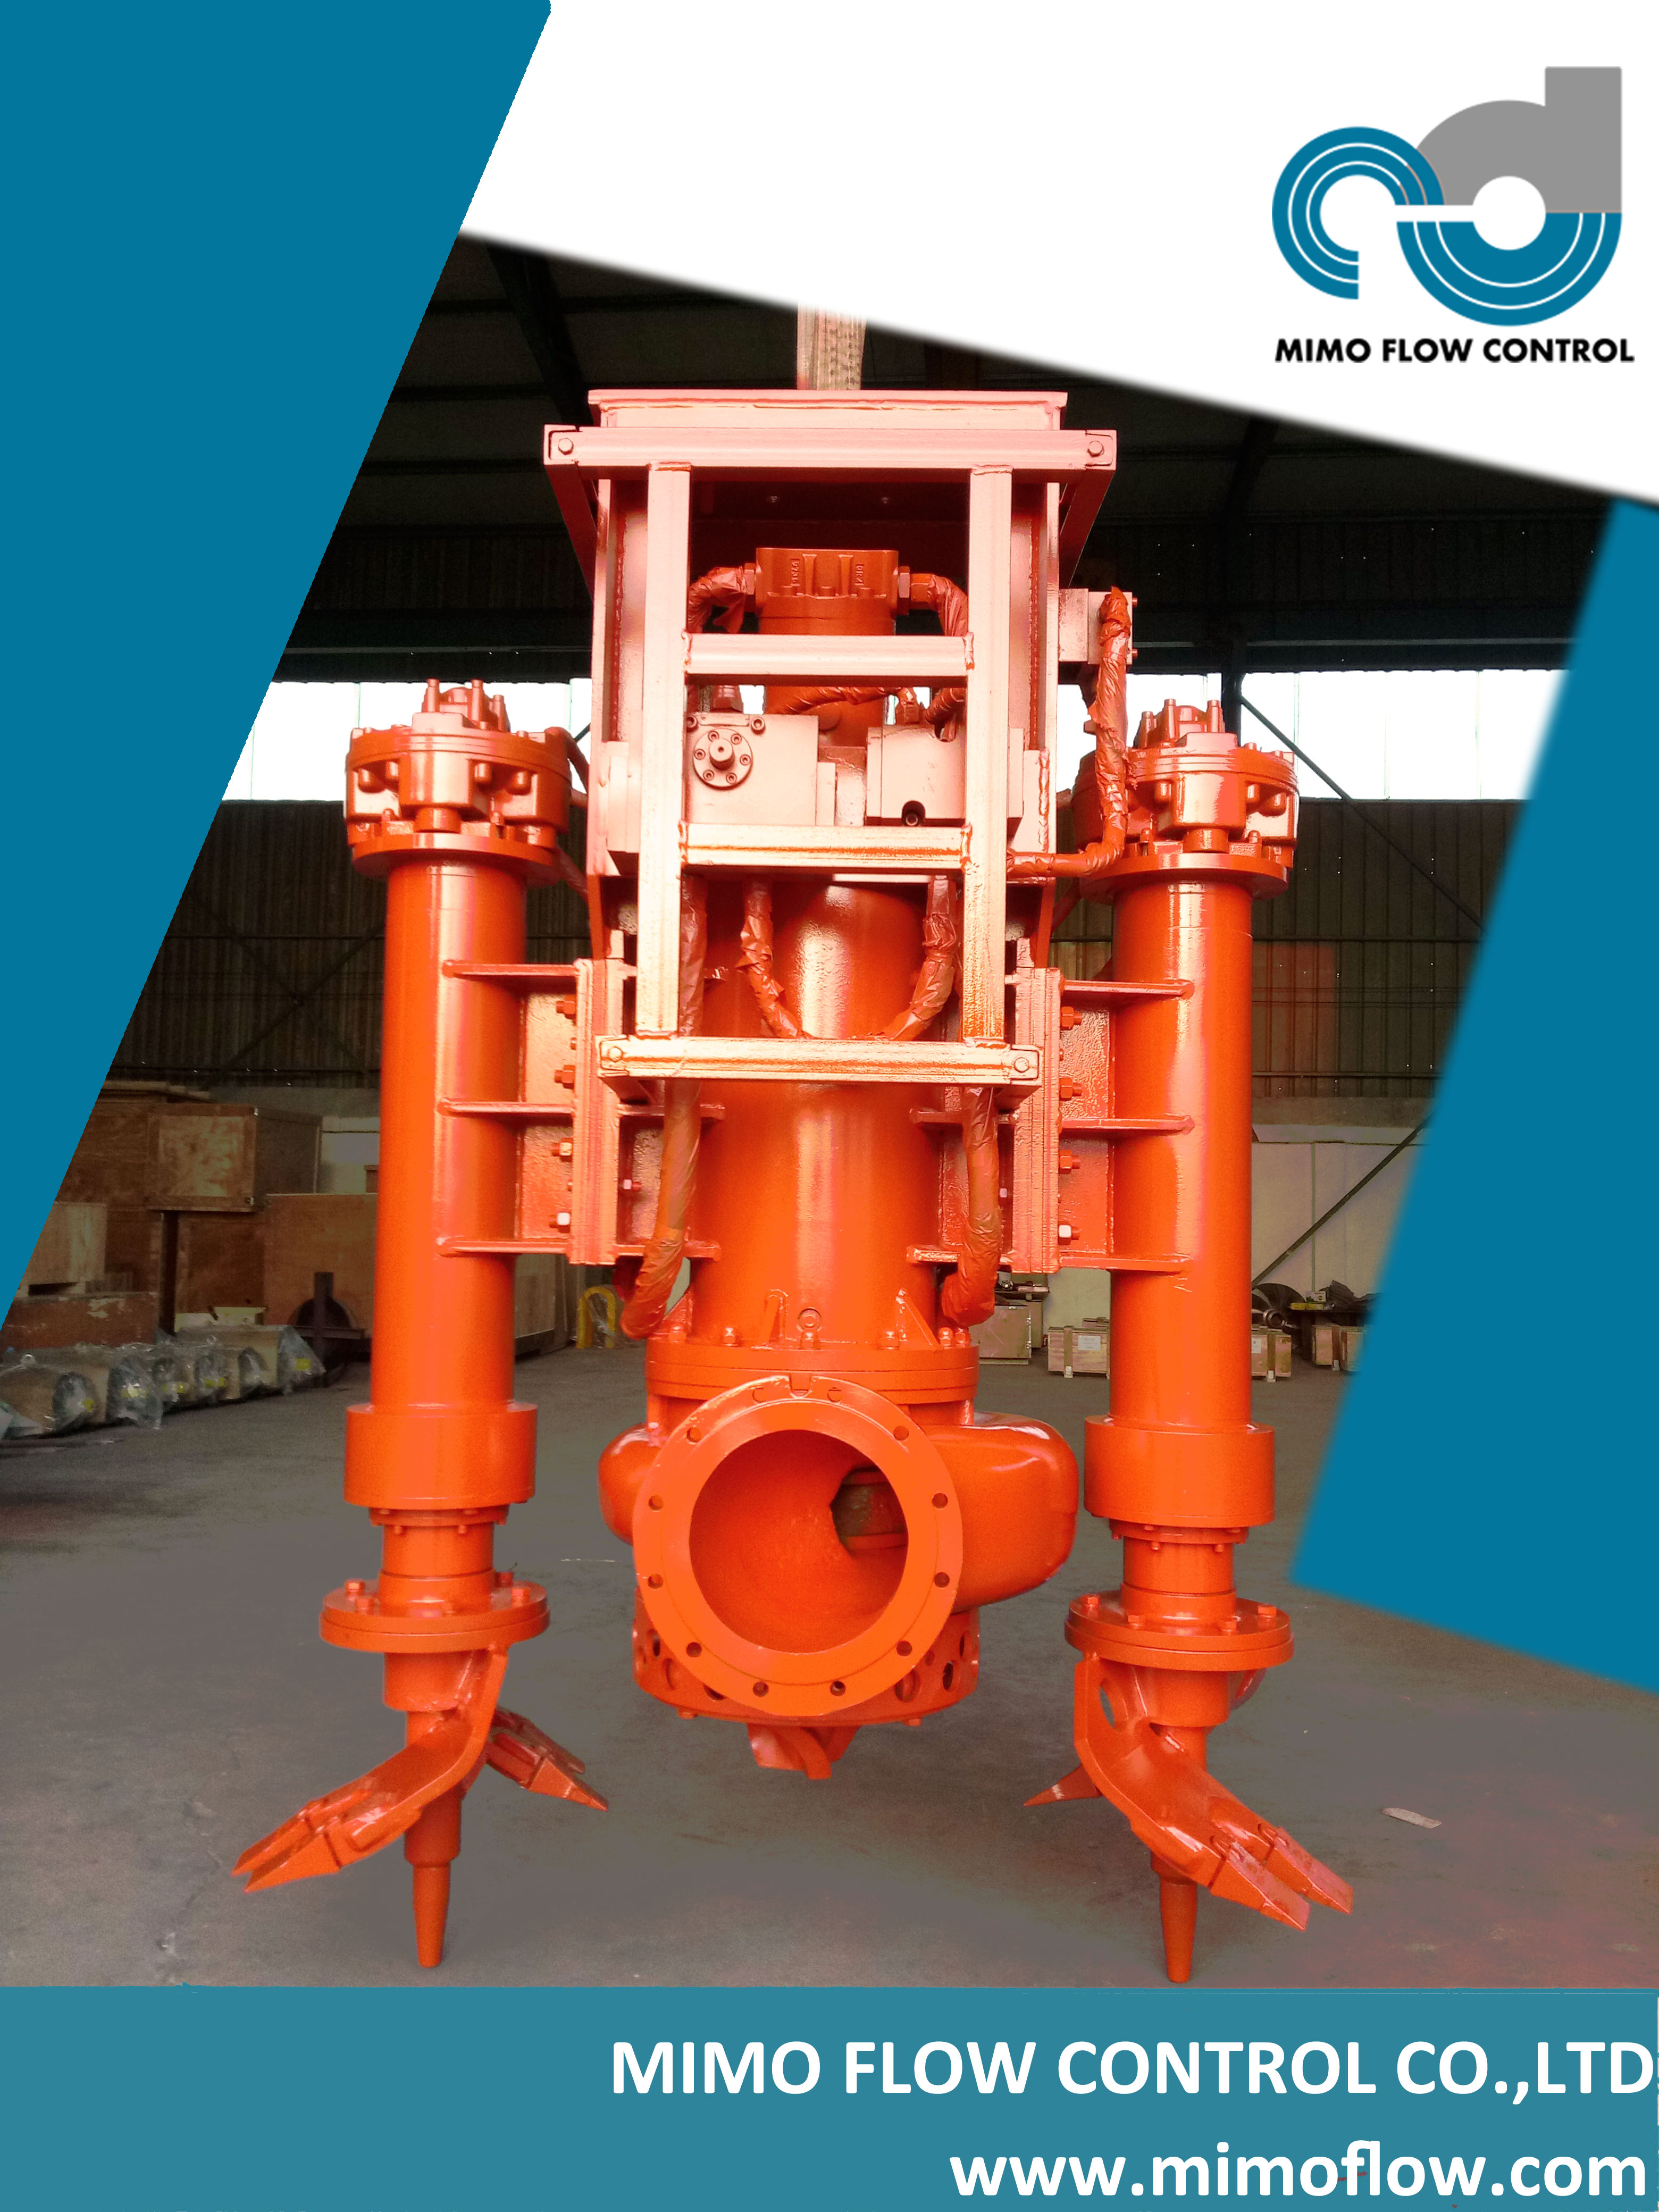 GOOD NEWS! HYDRAULIC SLURRY PUMP FINISHED AND EXPORTED TO KOREA